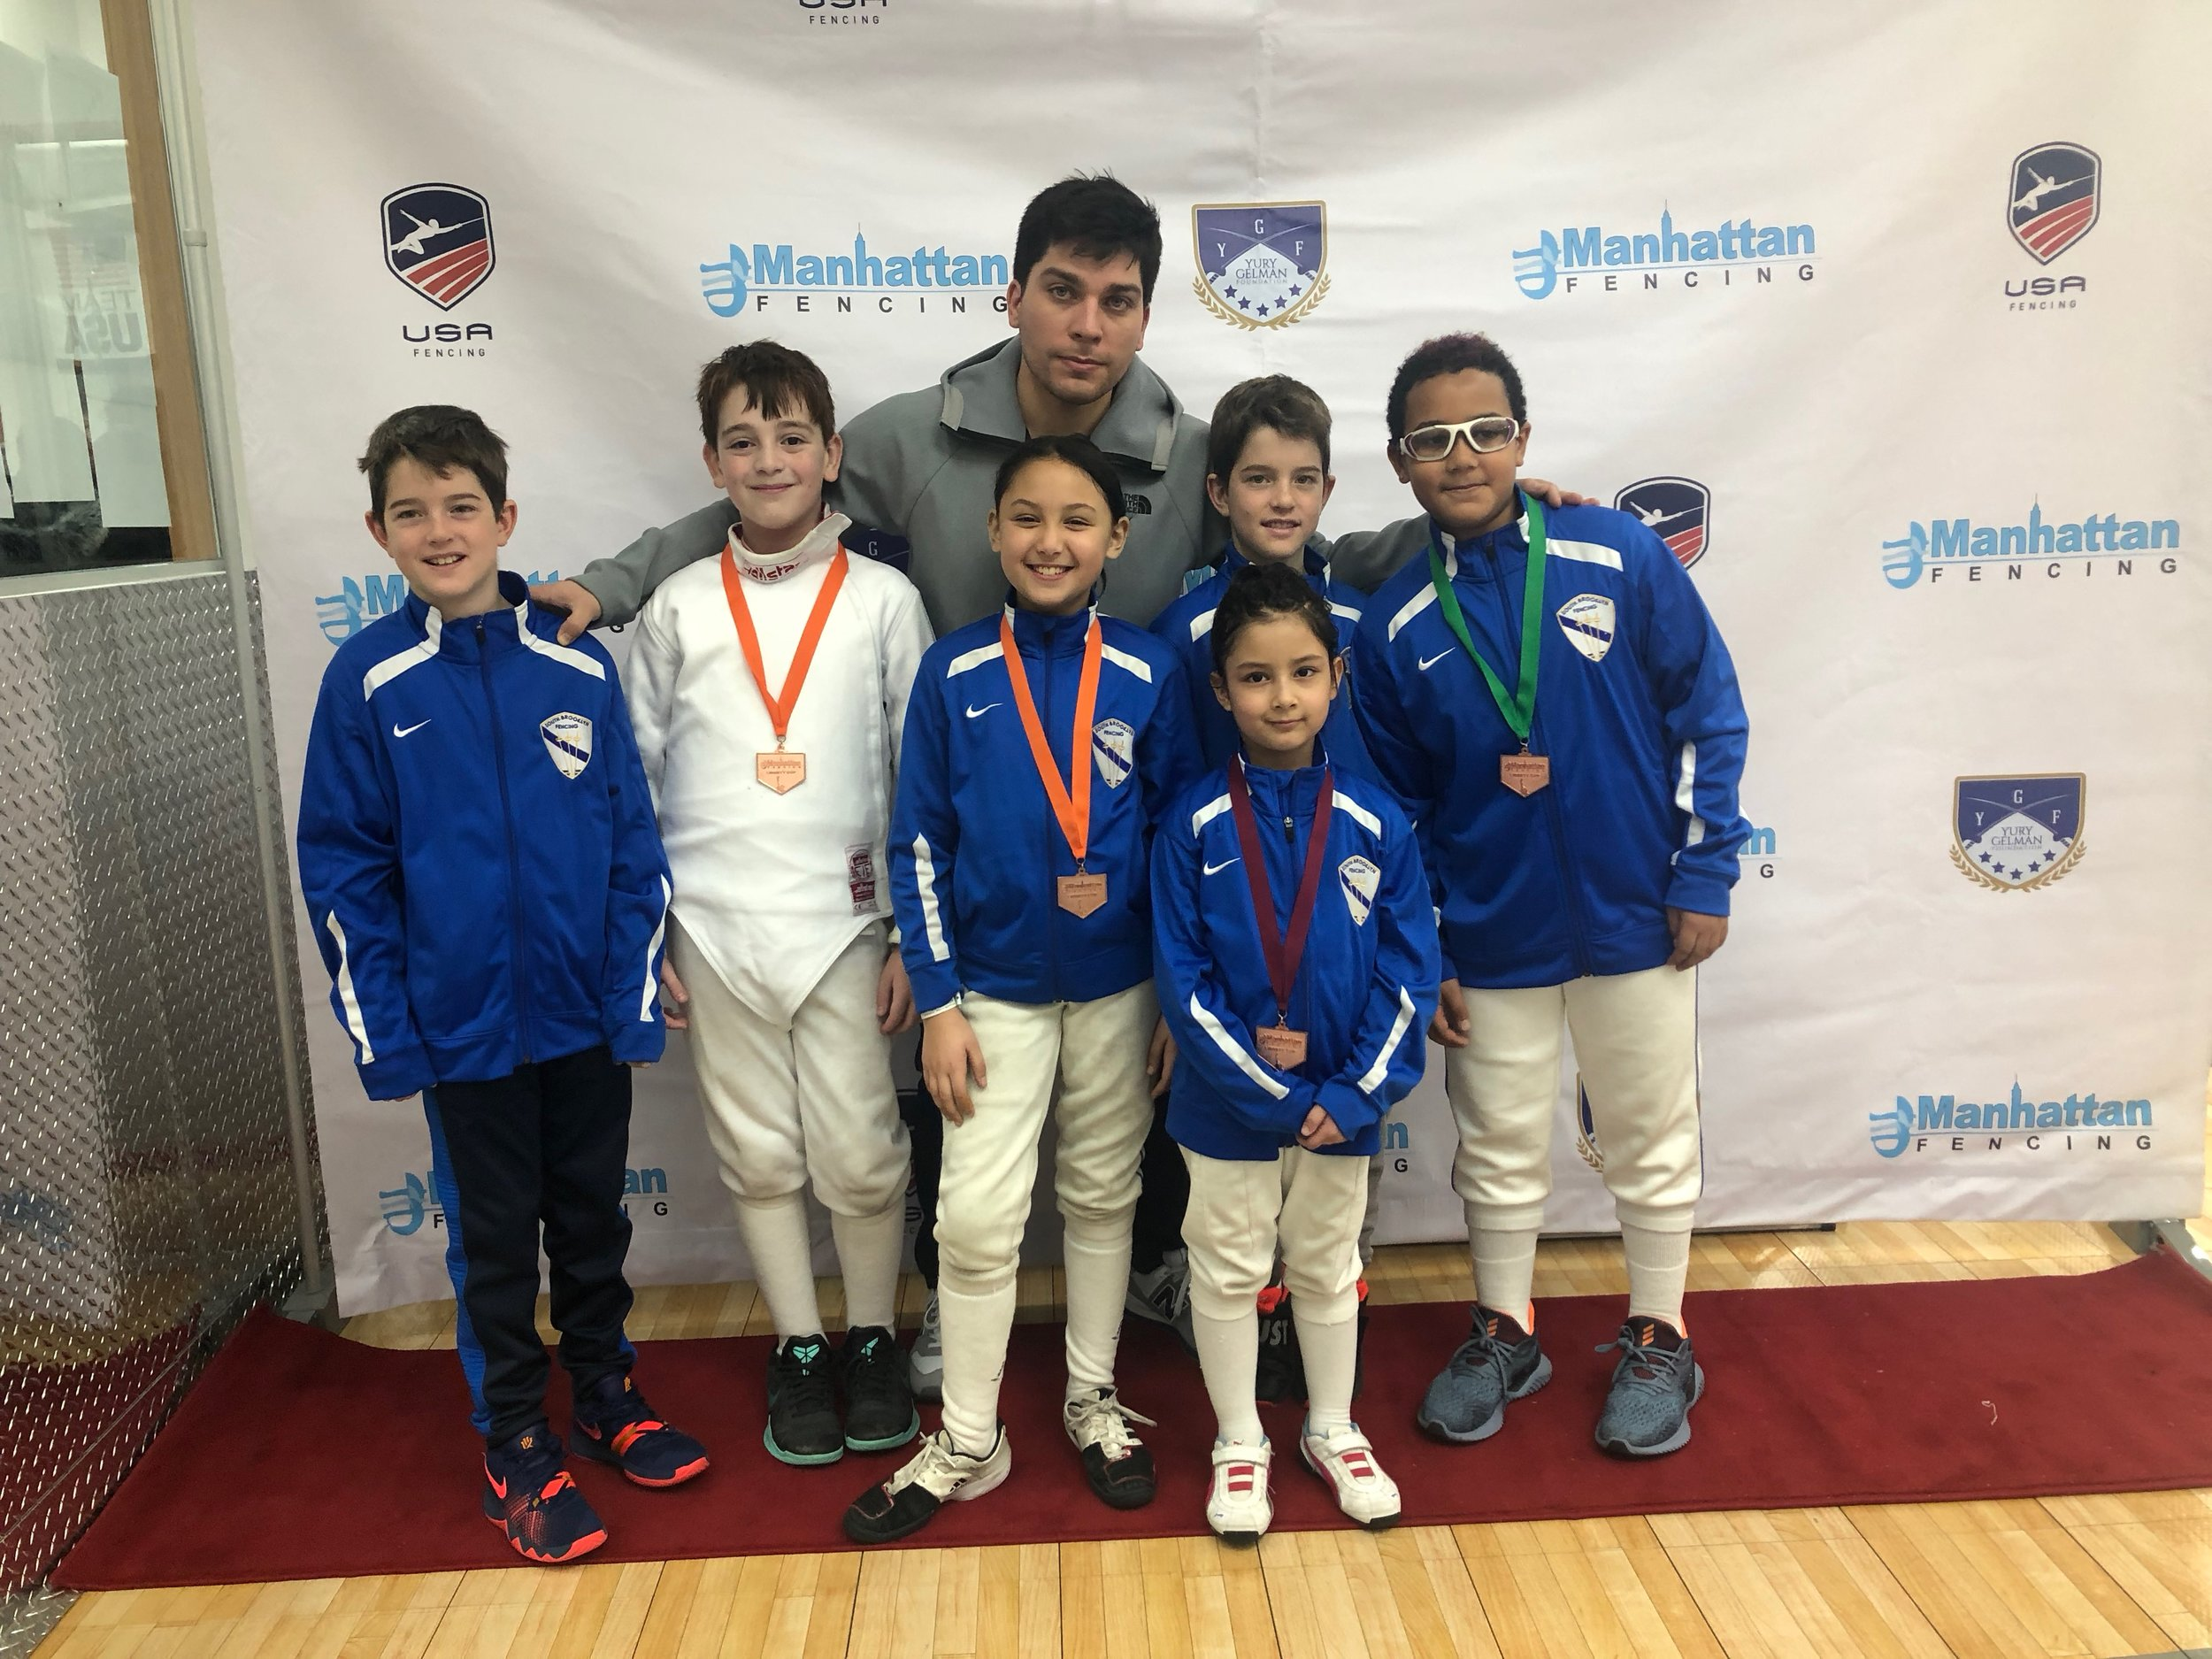 Manhattan Fencing Center Youth  TEAM Y10 South Brooklyn Fencing  December 2nd 2018